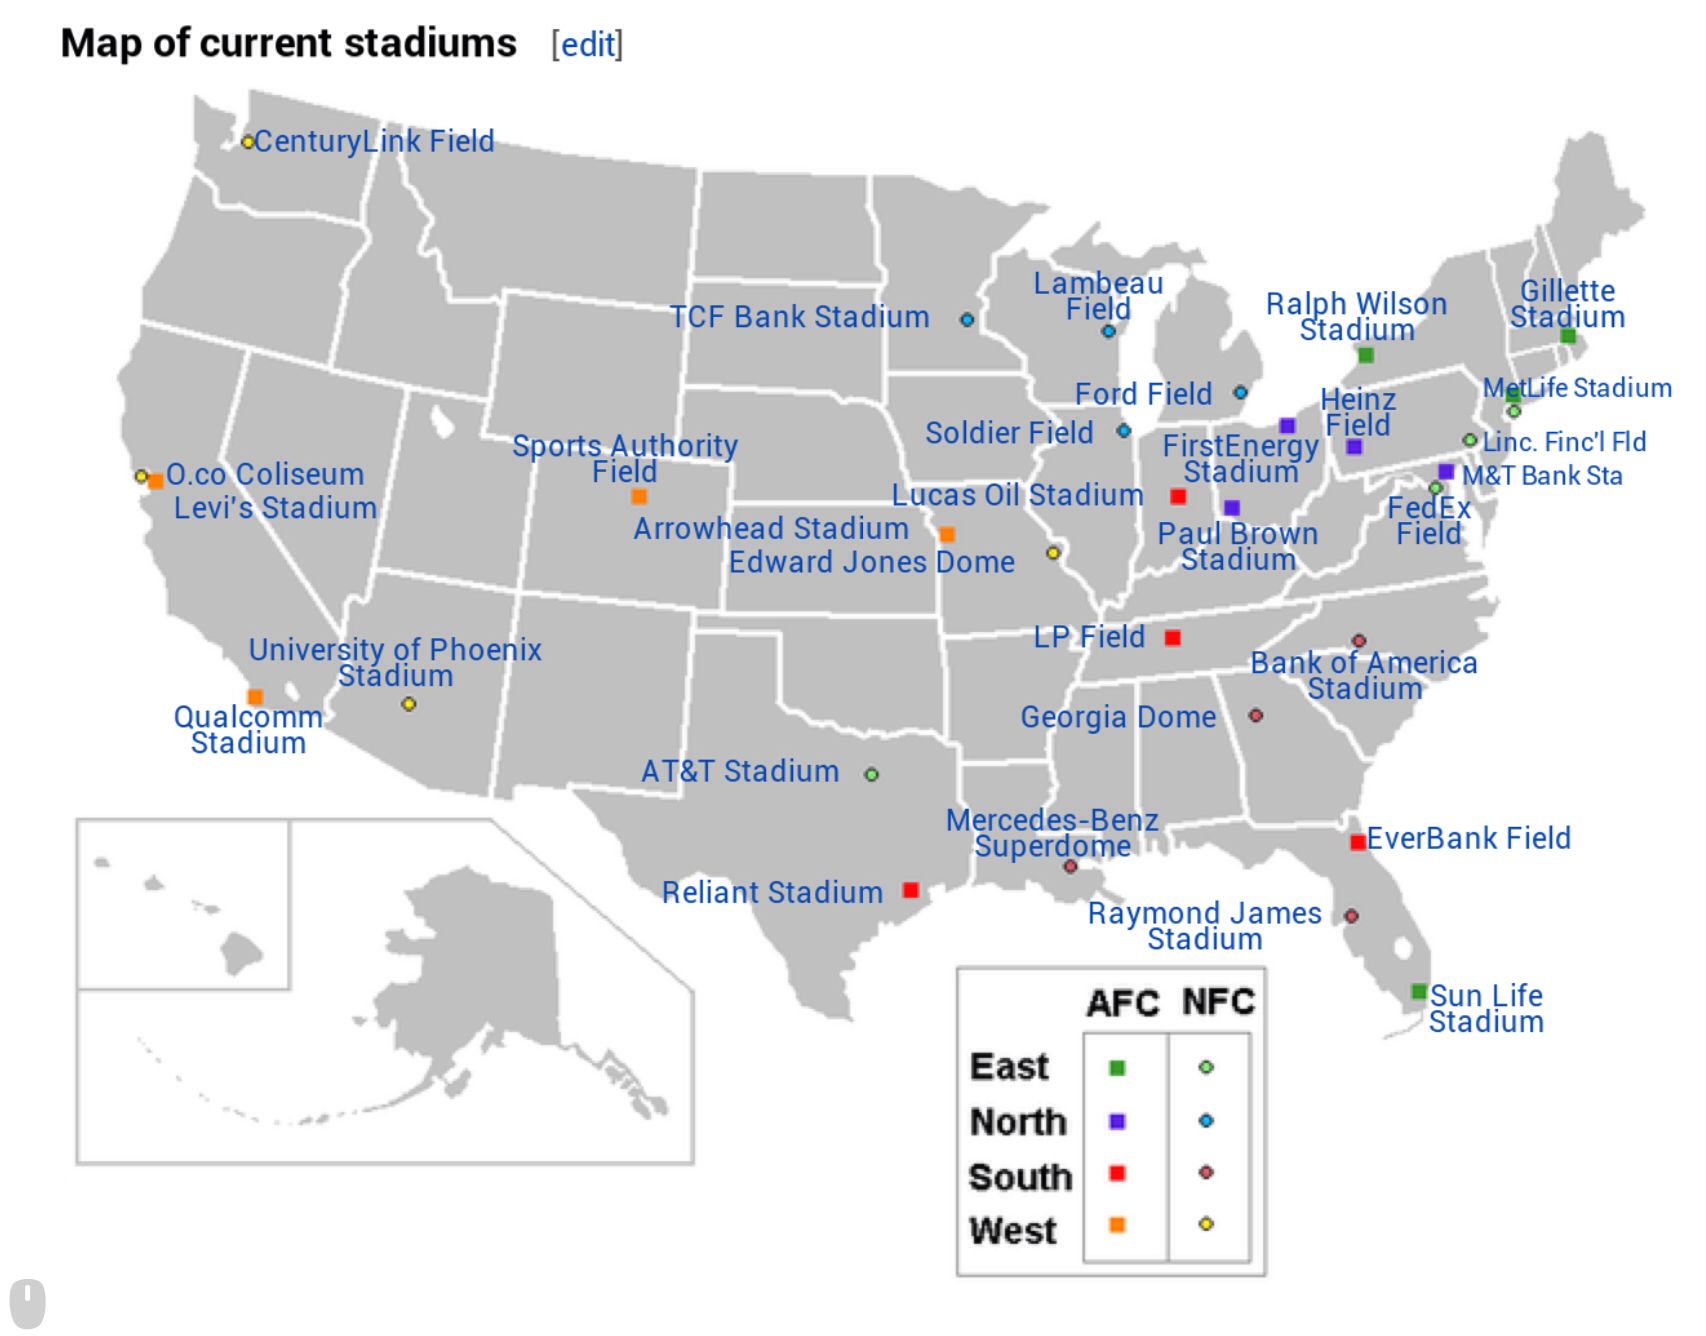 NFL Stadiums in United States   NFL Stadiums   Nfl stadiums ... on amalie arena map, madison square garden, heinz field, marlins ballpark map, arrowhead stadium, wembley stadium, soldier field, smoothie king center map, royal farms arena map, mercedes-benz superdome, metlife parking chart, miami dolphins map, the palace of auburn hills map, talking stick resort arena map, o.co coliseum map, truman sports complex map, sun life stadium, raymond james stadium, university of phoenix stadium, heinz field map, ford field, metlife ny, bmo harris bank center map, los angeles memorial sports arena map, metlife tickets, new york giants, metlife seating chart, gillette stadium, georgia dome, giants stadium, new york jets, gila river arena map, prudential center map, metlife sports complex, lambeau field, centurylink field, reliant stadium, cowboys stadium,